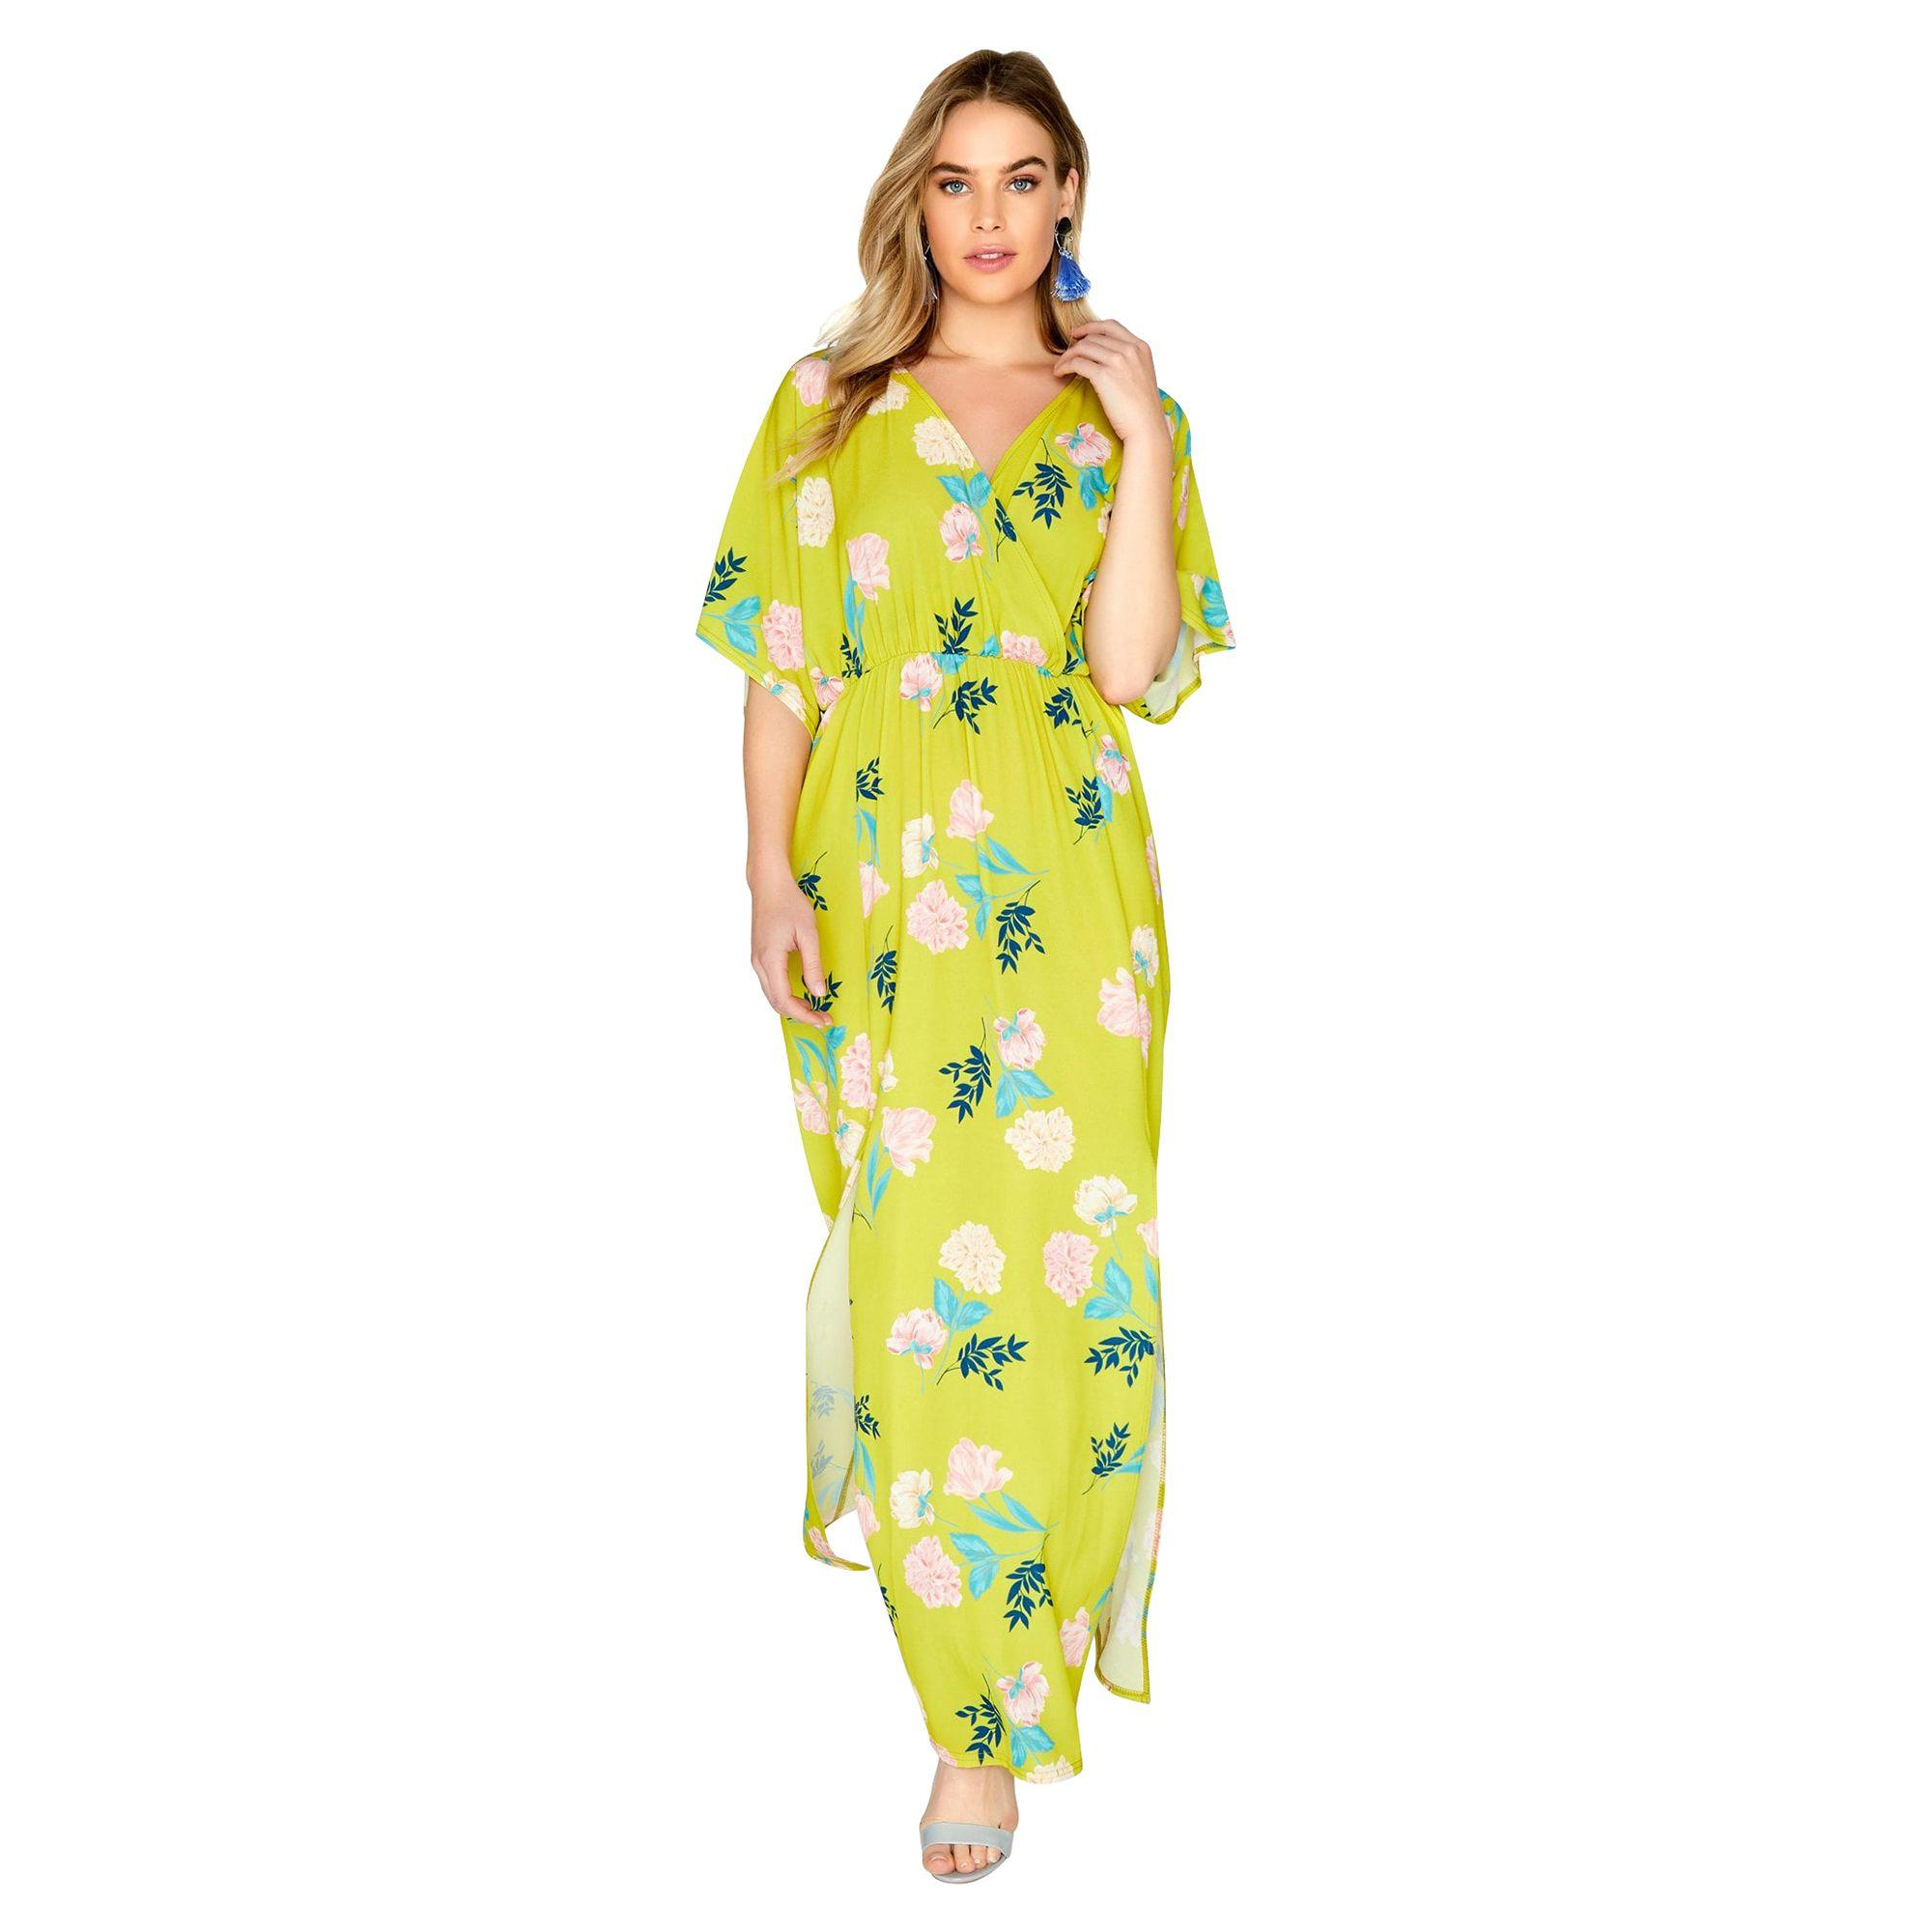 3c26a72510b8 Girls On Film Girls On Fim Yellow Printed Pebble Crepe Maxi Dress in ...